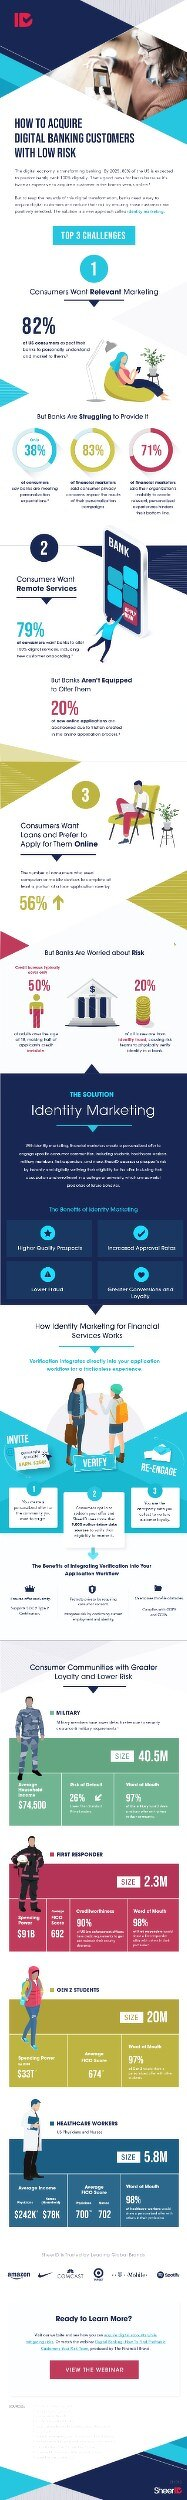 How Financial Marketers Can Win the Next Generation of Customers